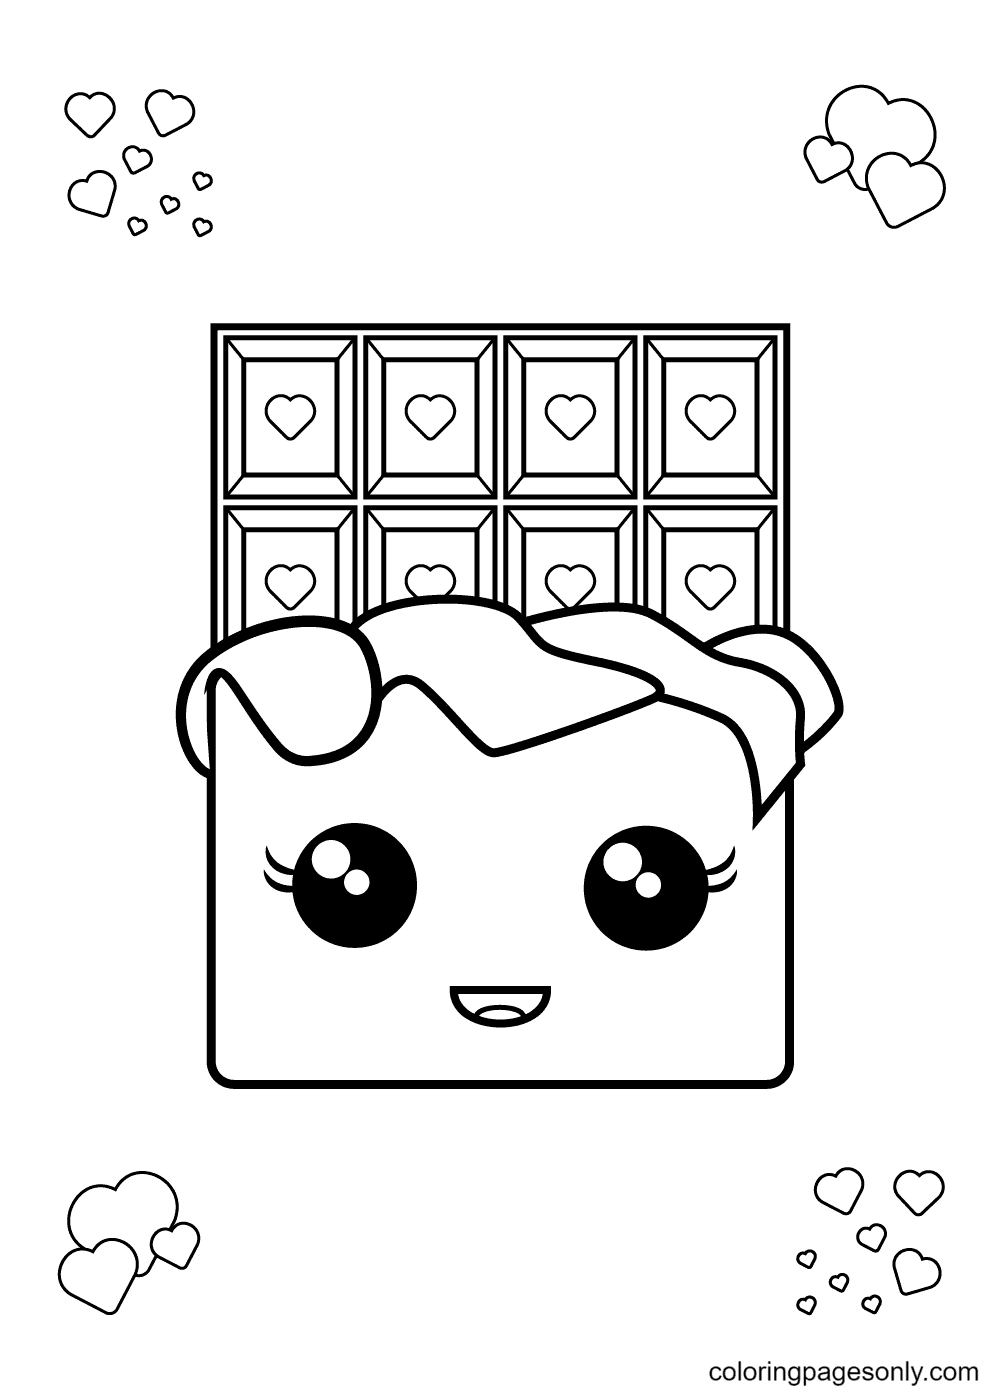 A Cute and Smiling Chocolate Bar Coloring Page